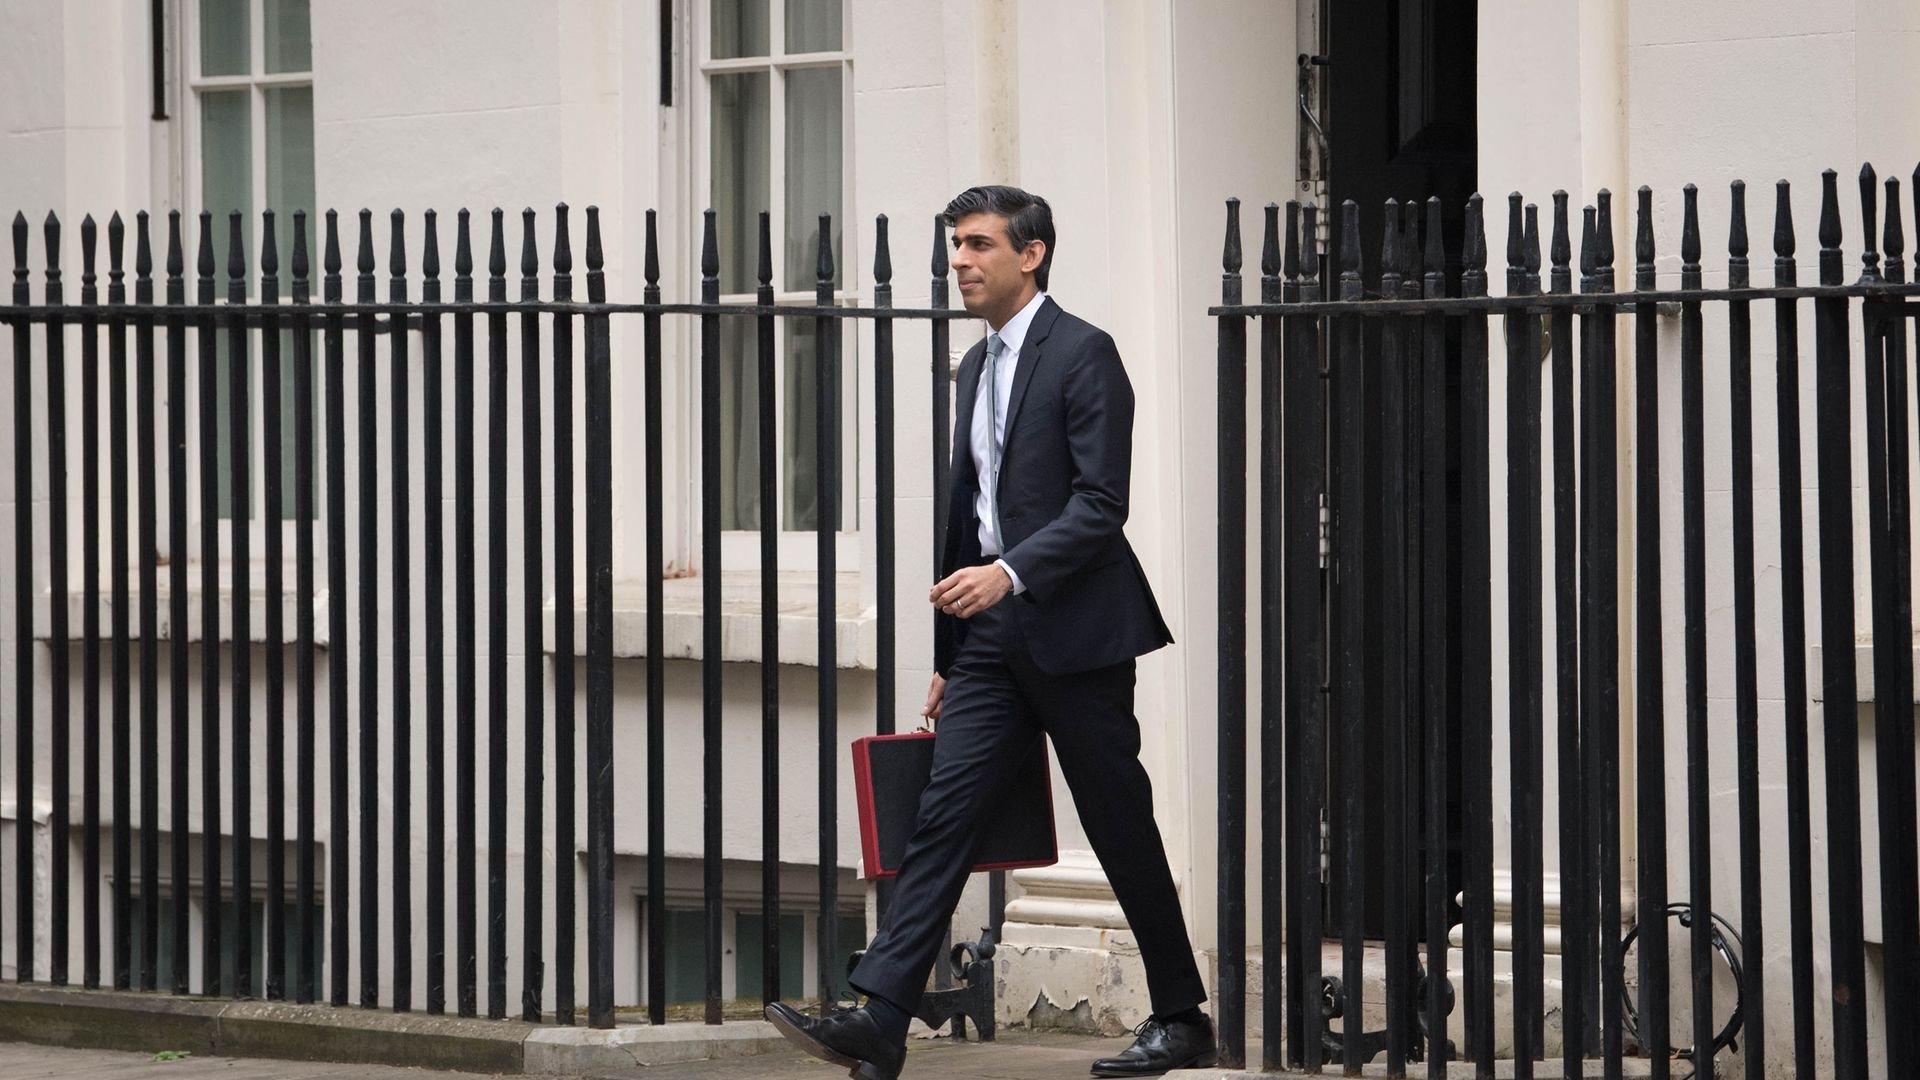 Chancellor of the Exchequer, Rishi Sunak outside 11 Downing Street, London, before heading to the House of Commons to deliver his Budget - Credit: PA